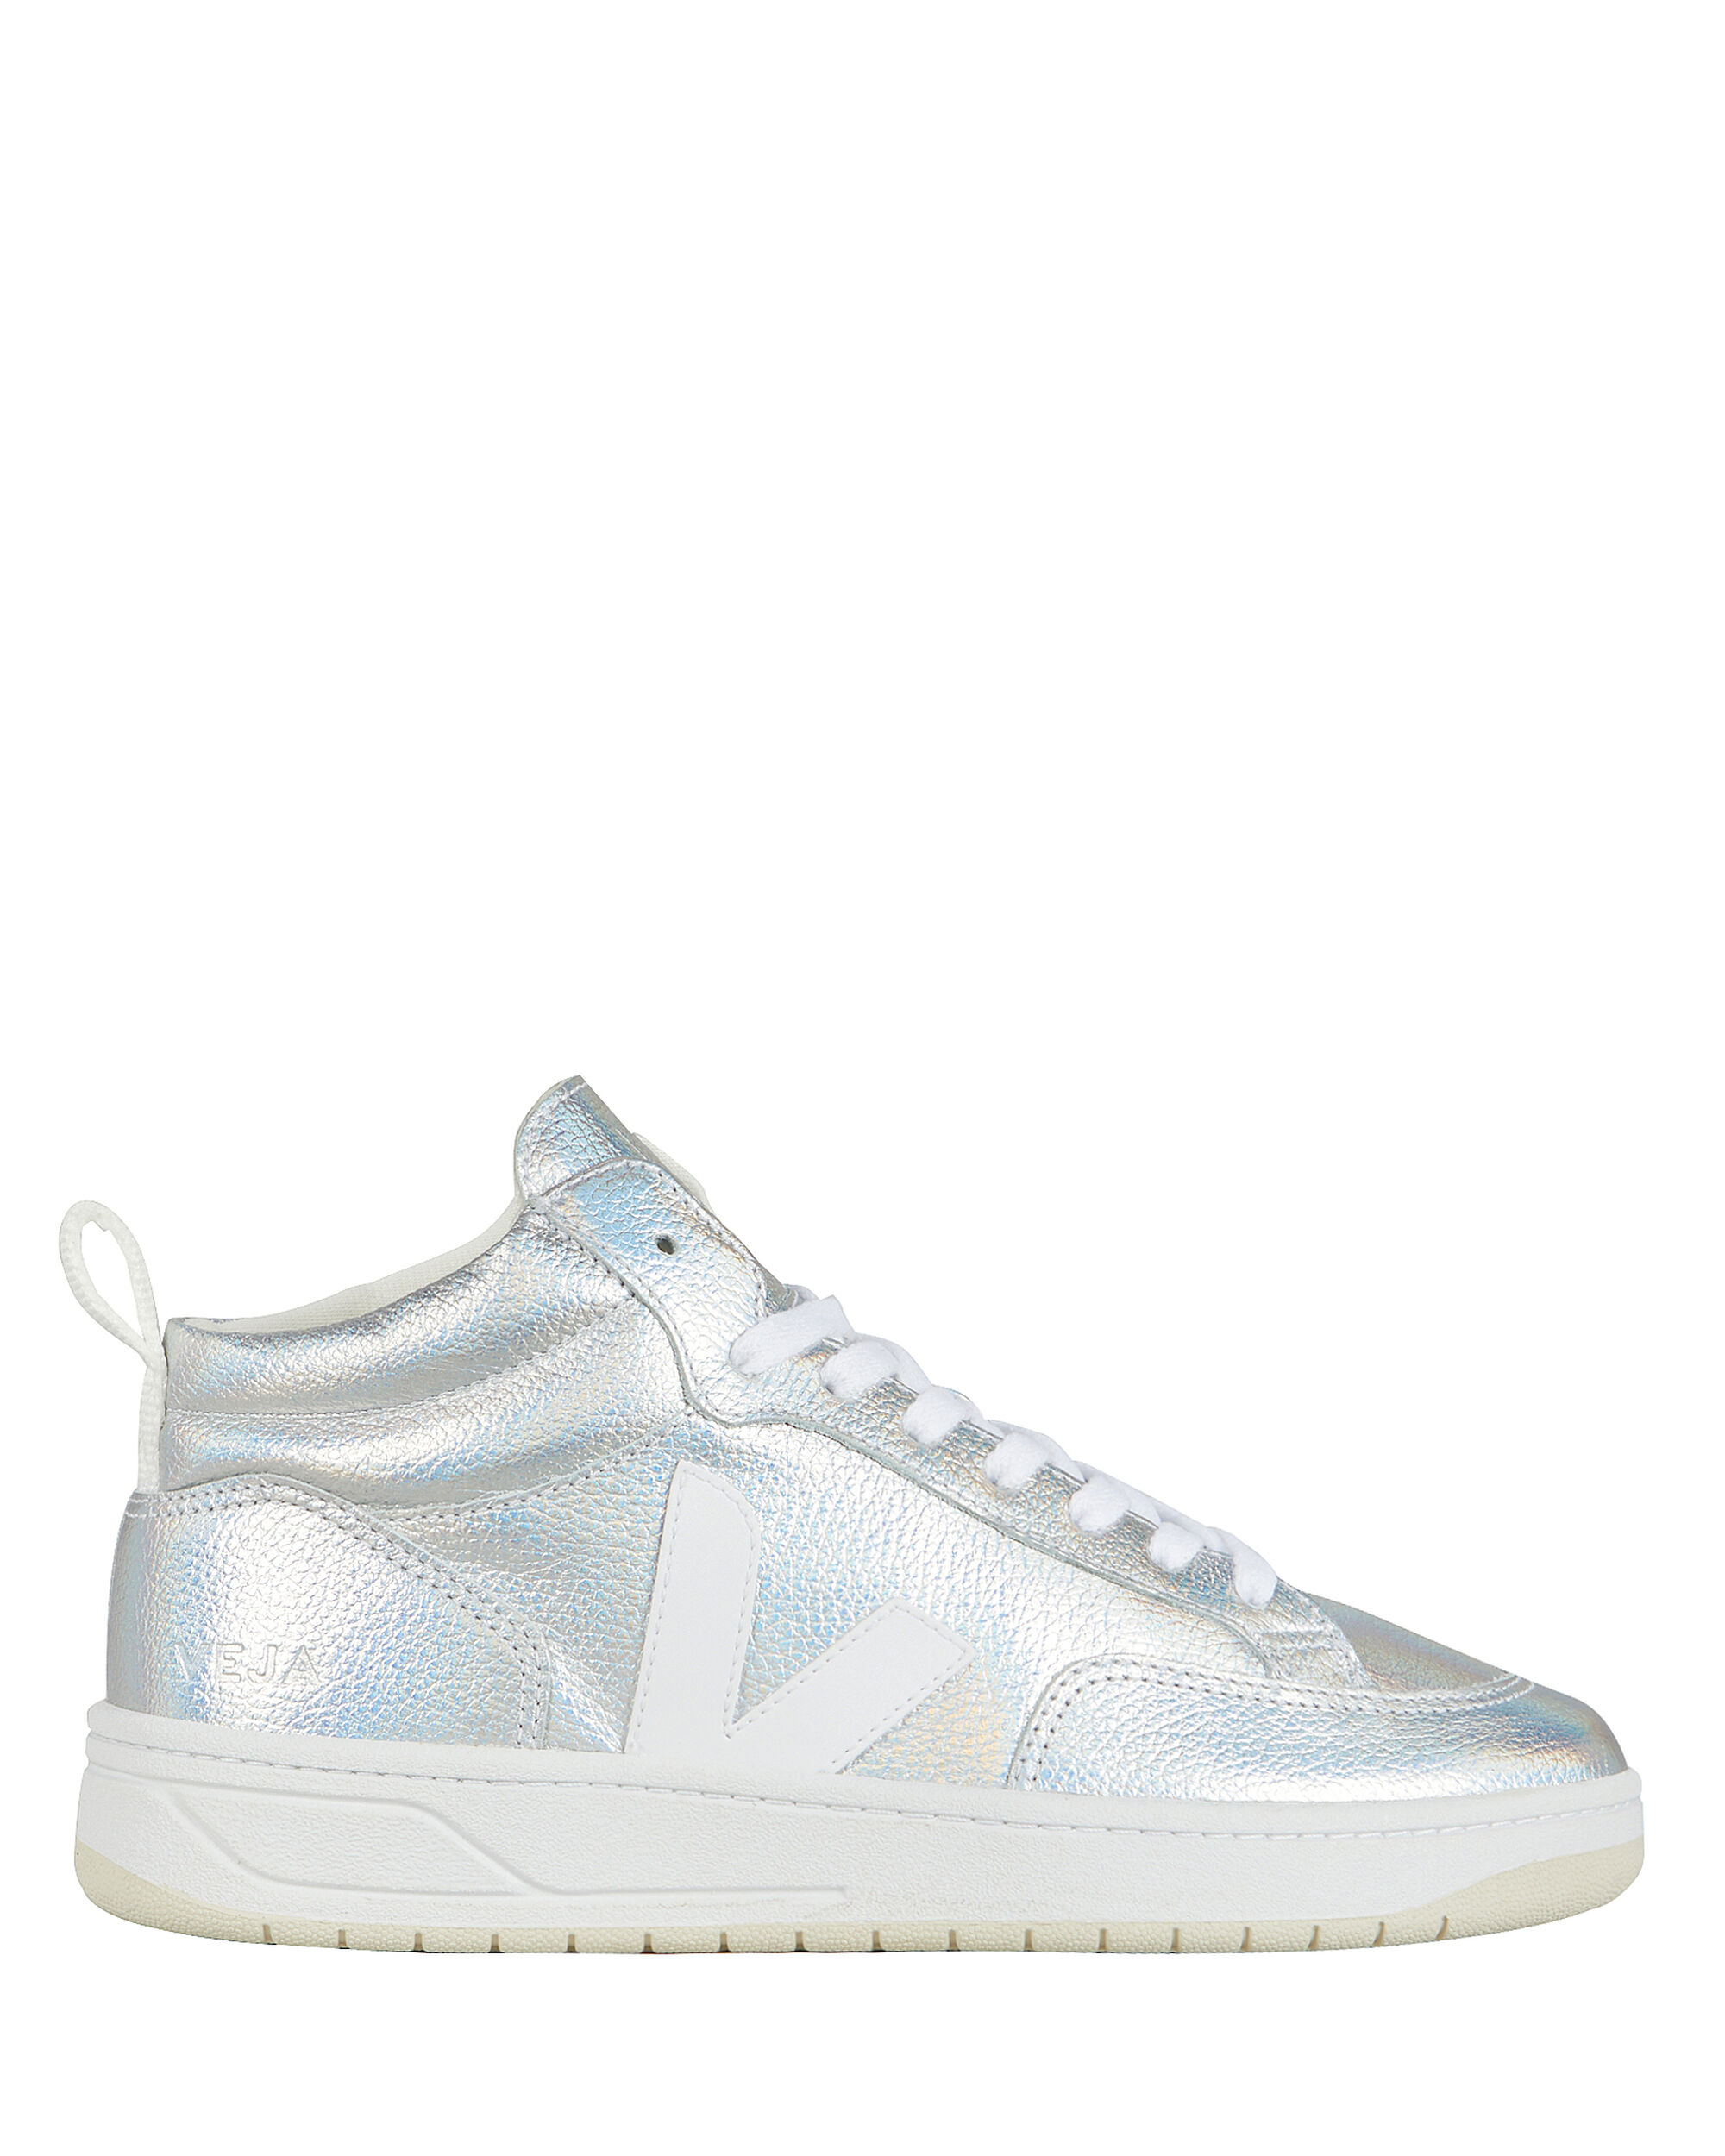 Roraima High-Top Sneakers, SILVER, hi-res